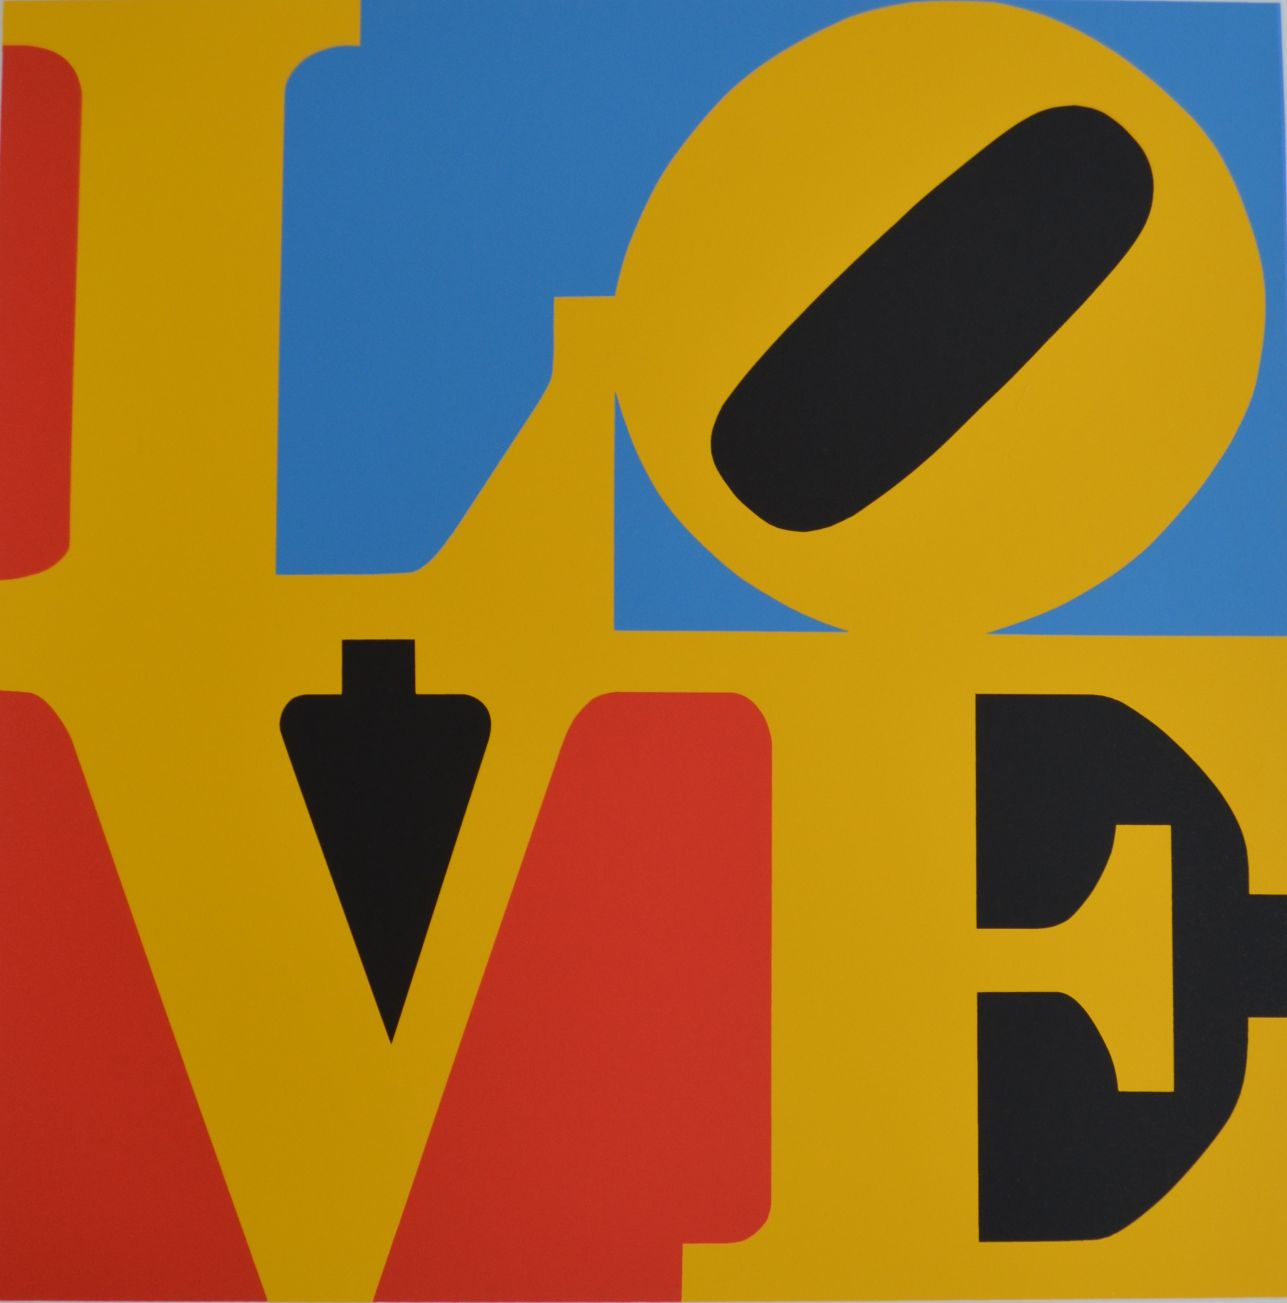 edition print by Robert Indiana titled Book of Love #6 (Blue, yellow, black, red - four color love)